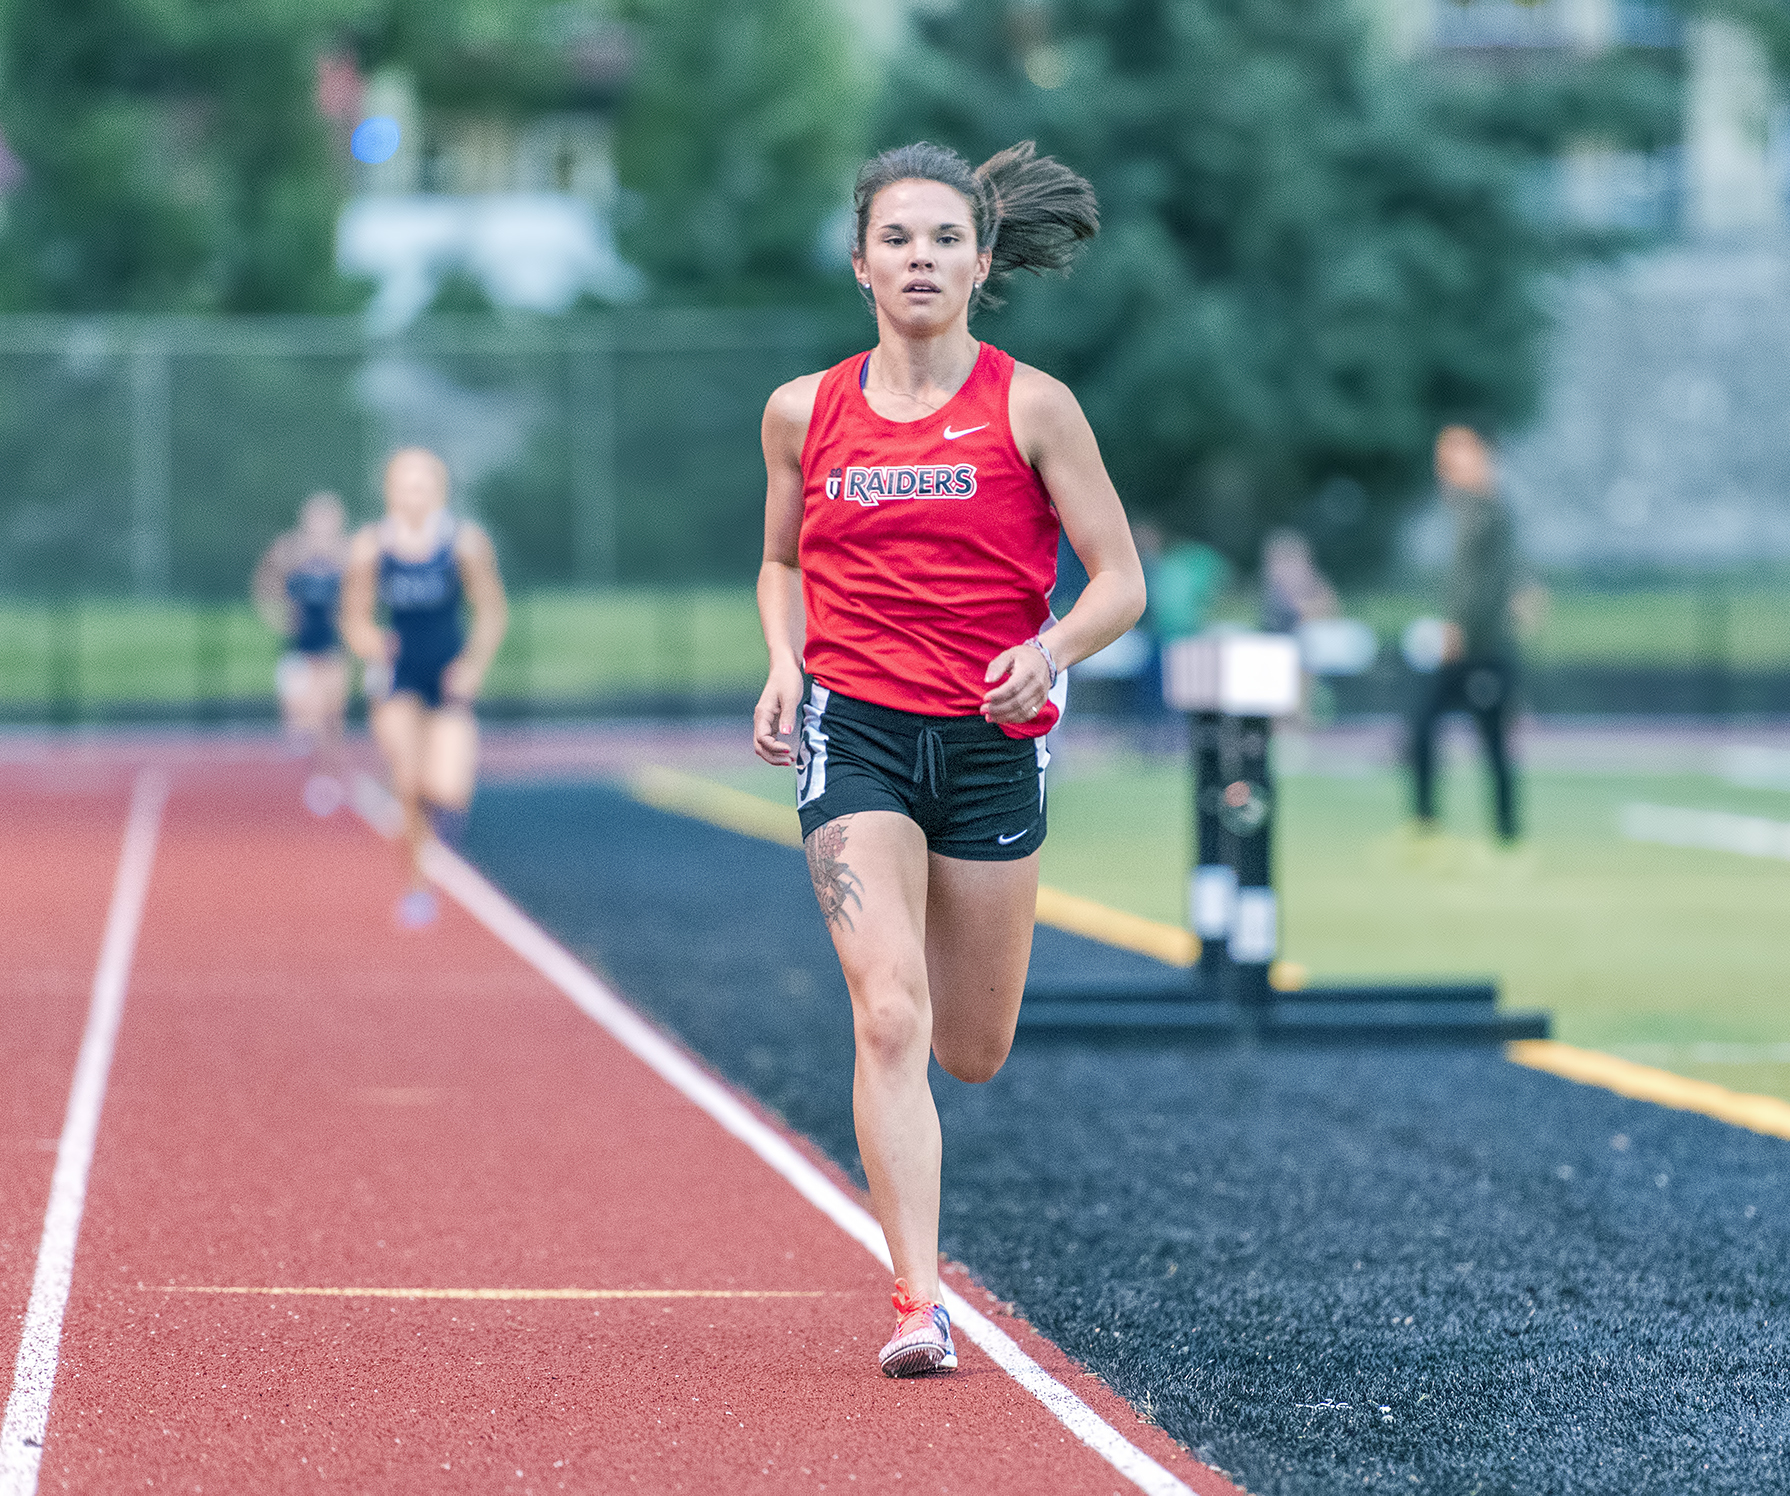 16A_1853-RAW-sou-track-and-field-Jessa-Perkinson-shannon-maas